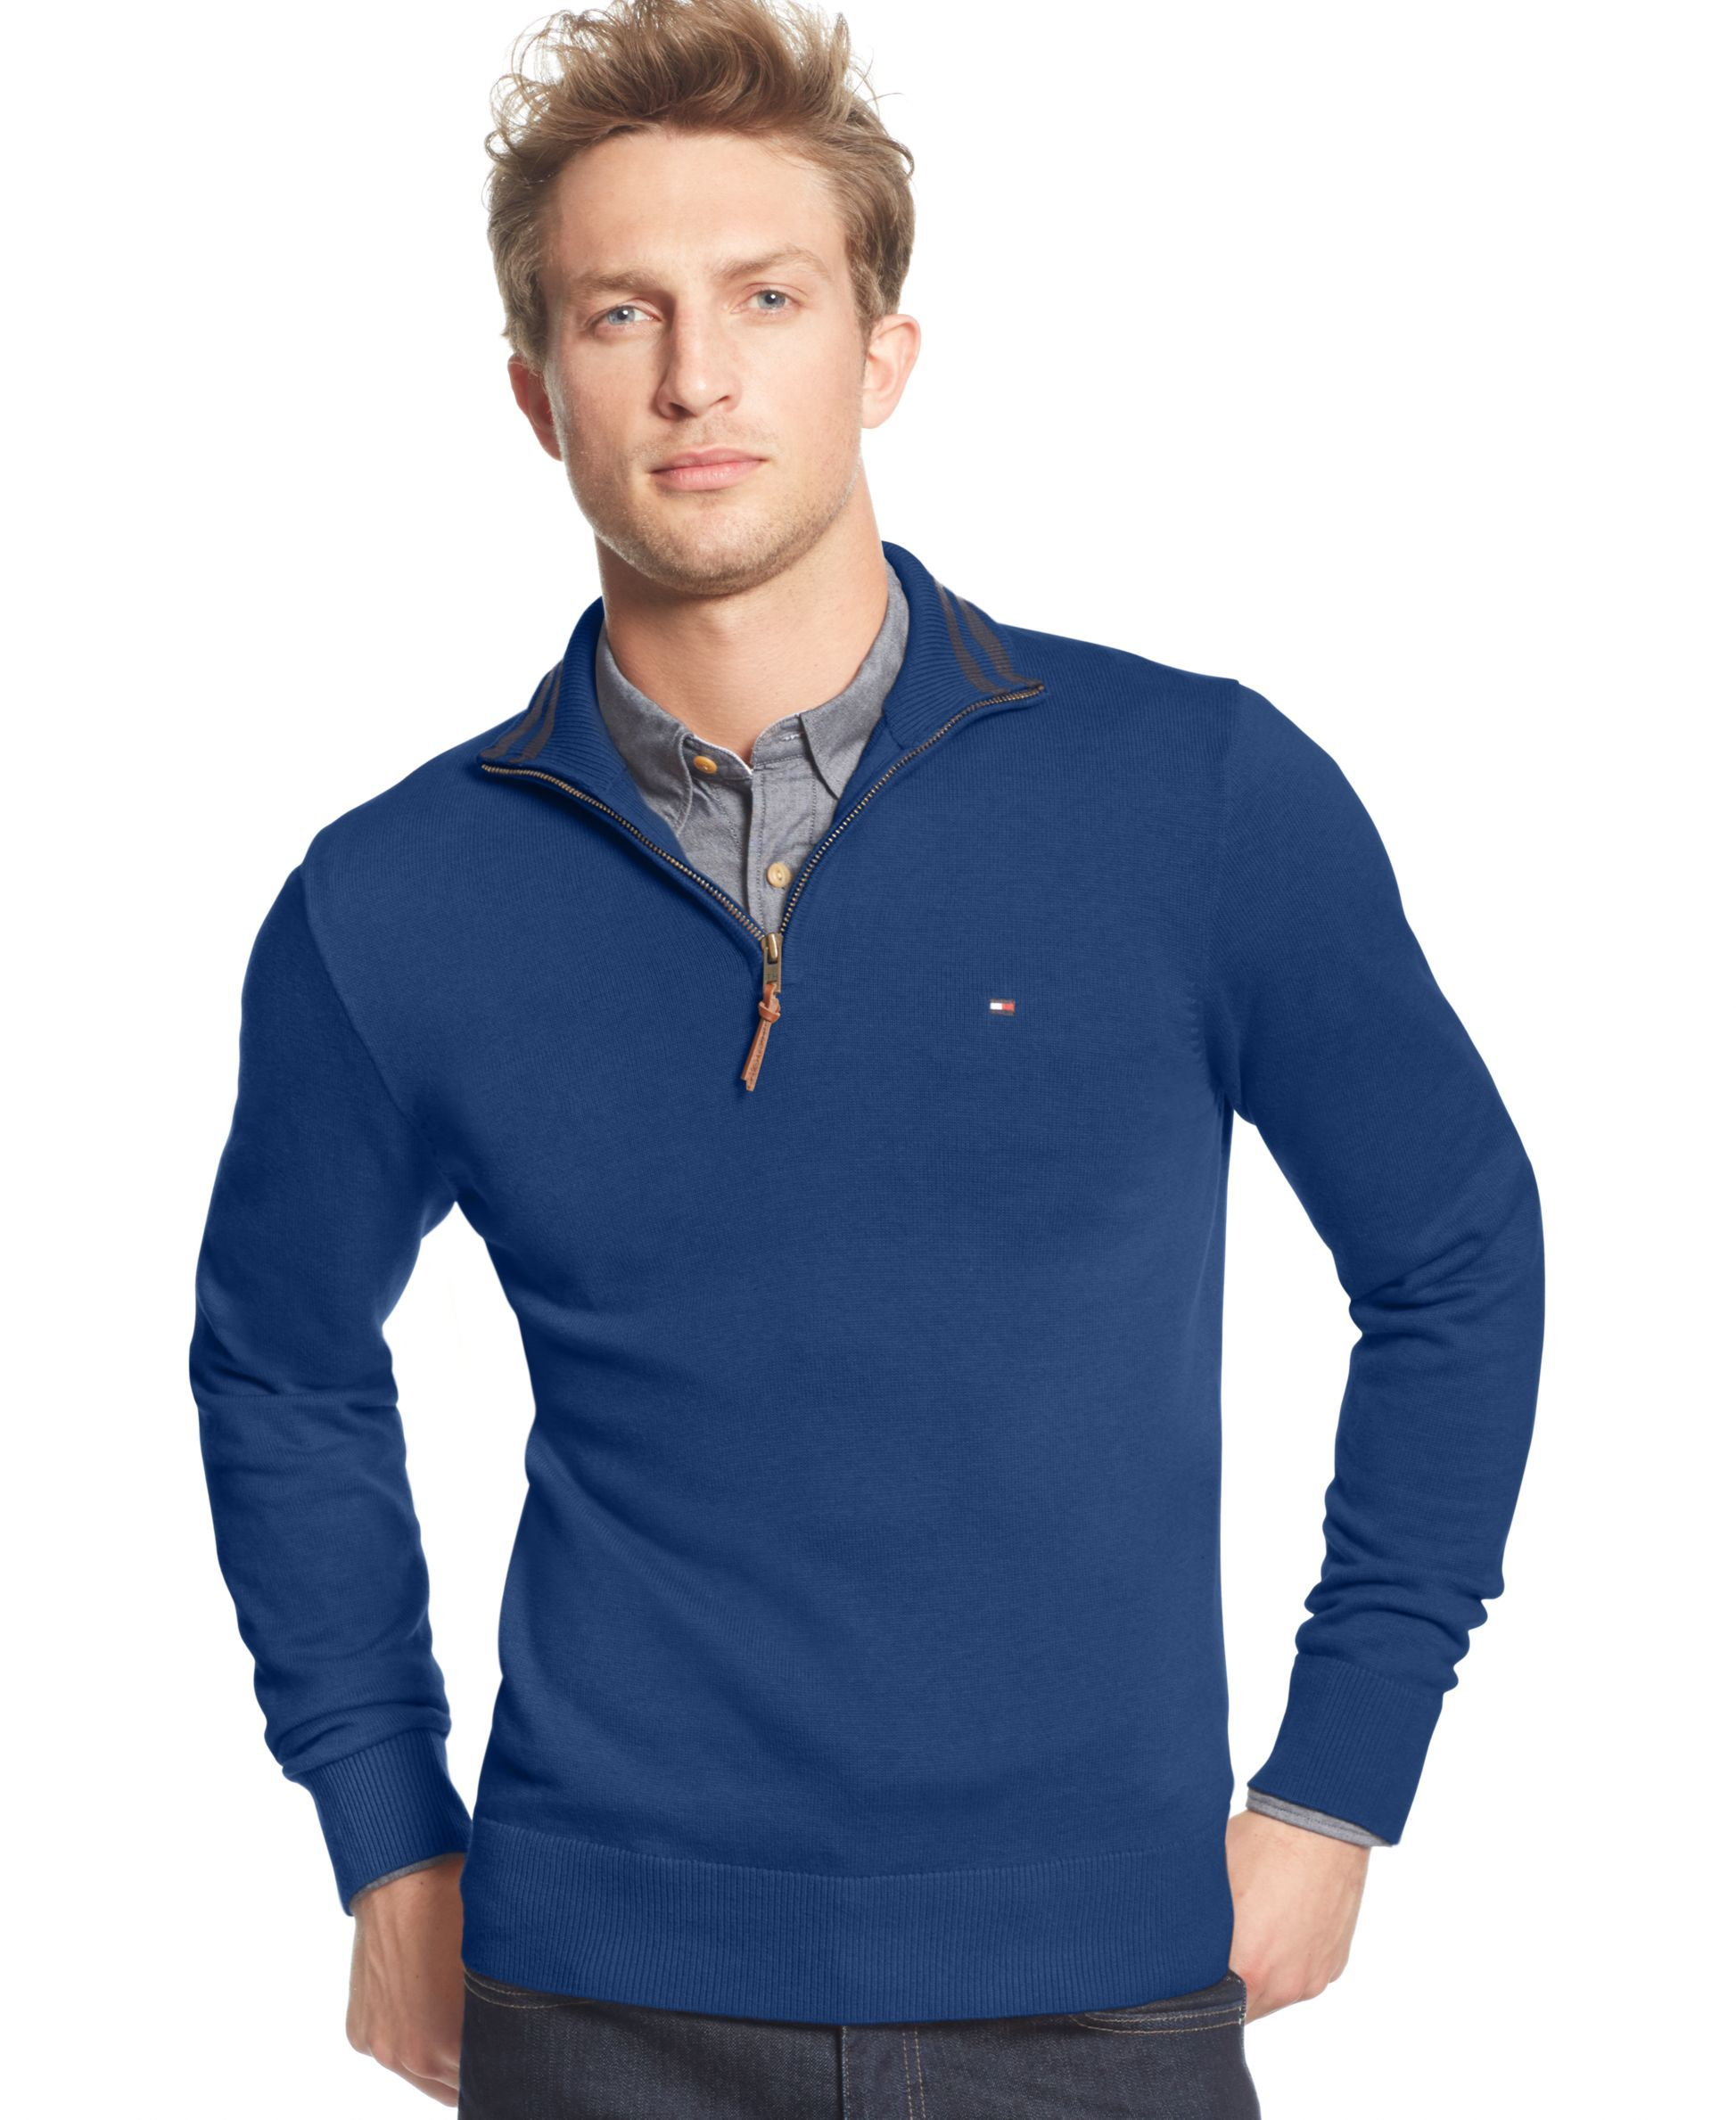 Tommy Hilfiger's signature style pullover sweater looks great ...